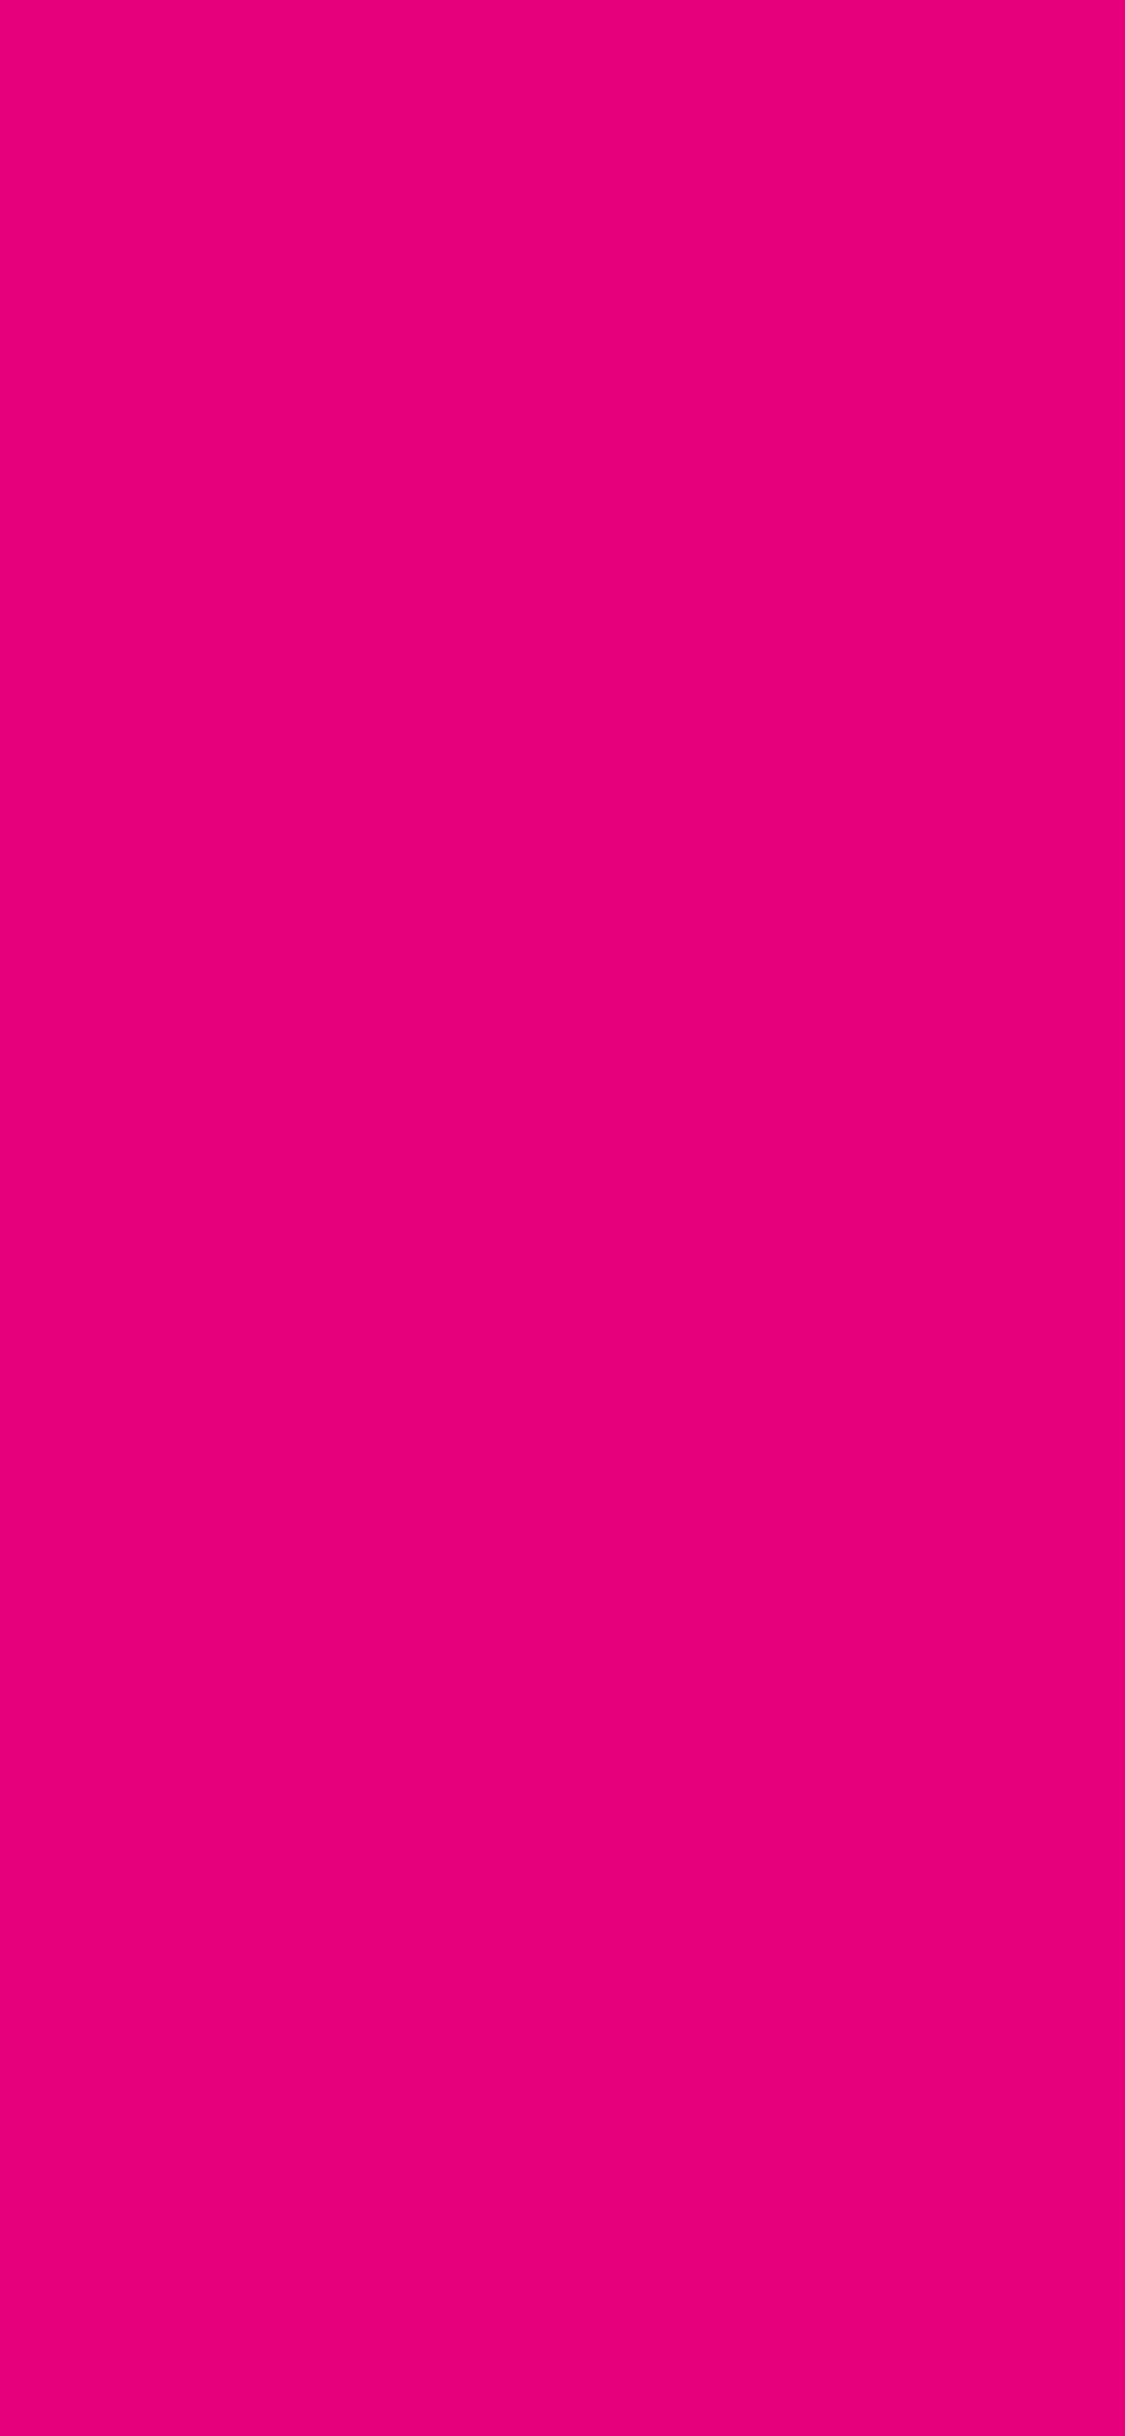 1125x2436 Mexican Pink Solid Color Background